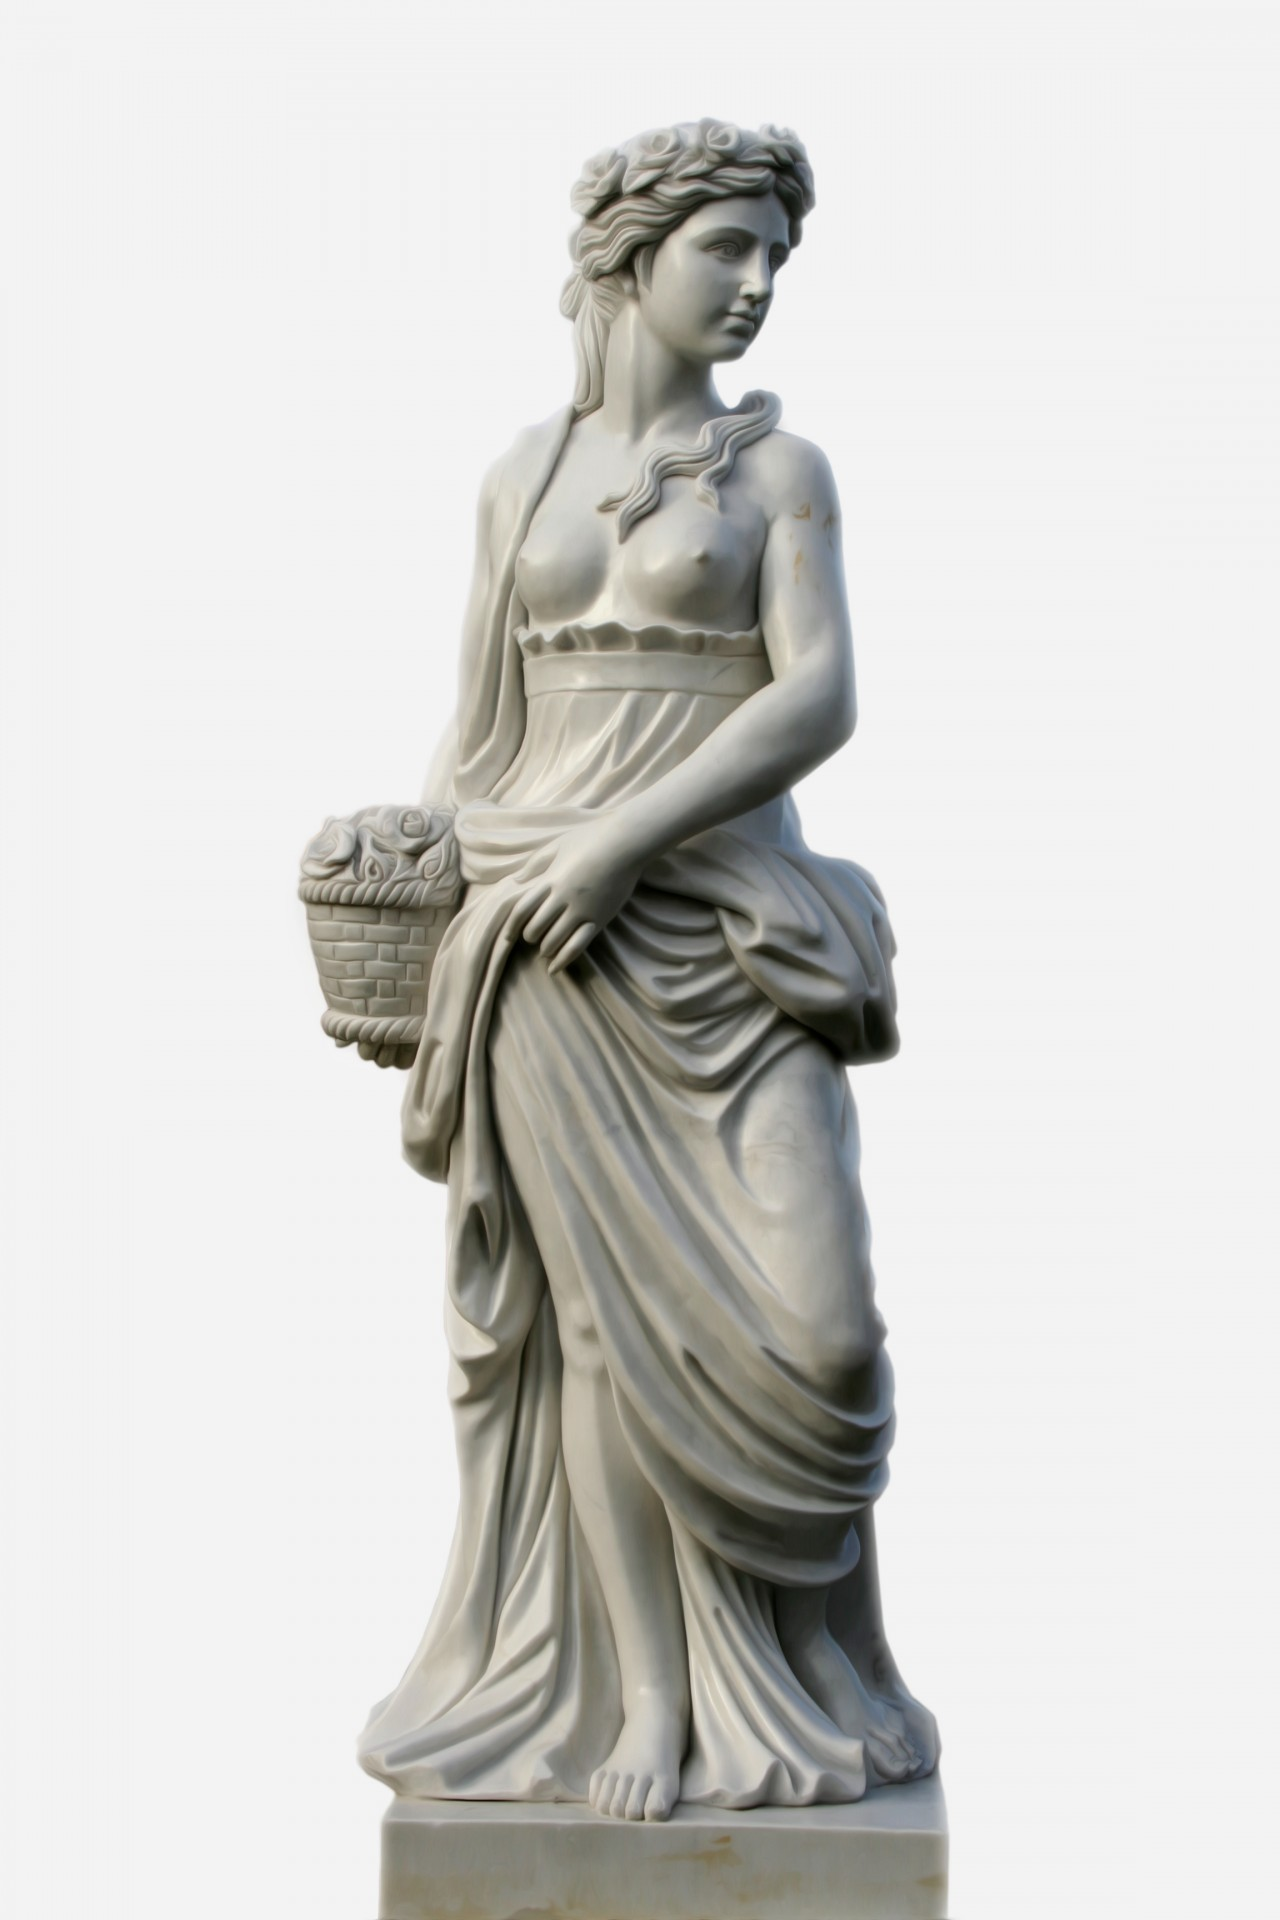 HD Quality Wallpaper   Collection: Artistic, 1280x1920 Statue